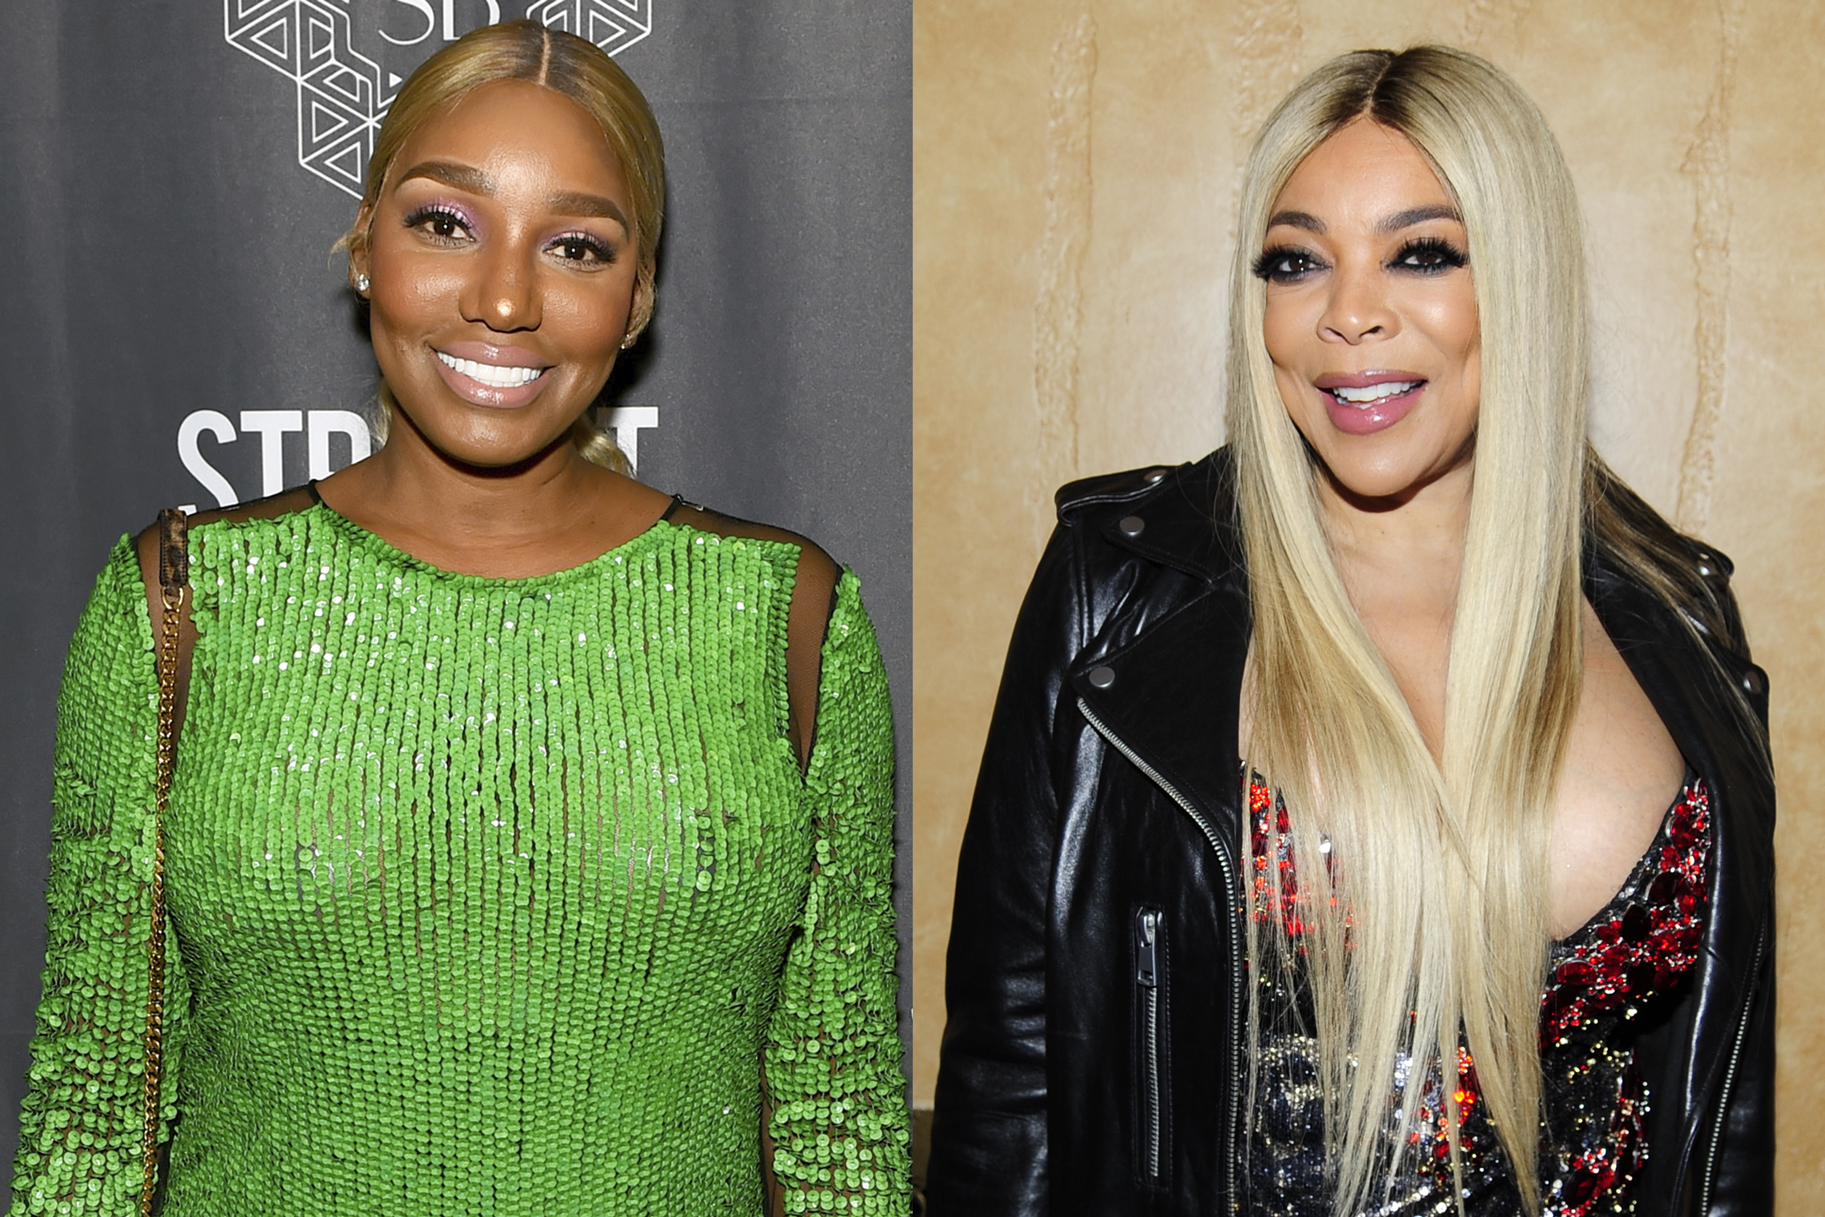 NeNe Leakes Has The Time Of Her Life With Wendy Williams - People Bash The TV Host's Wig - Check Out The Video